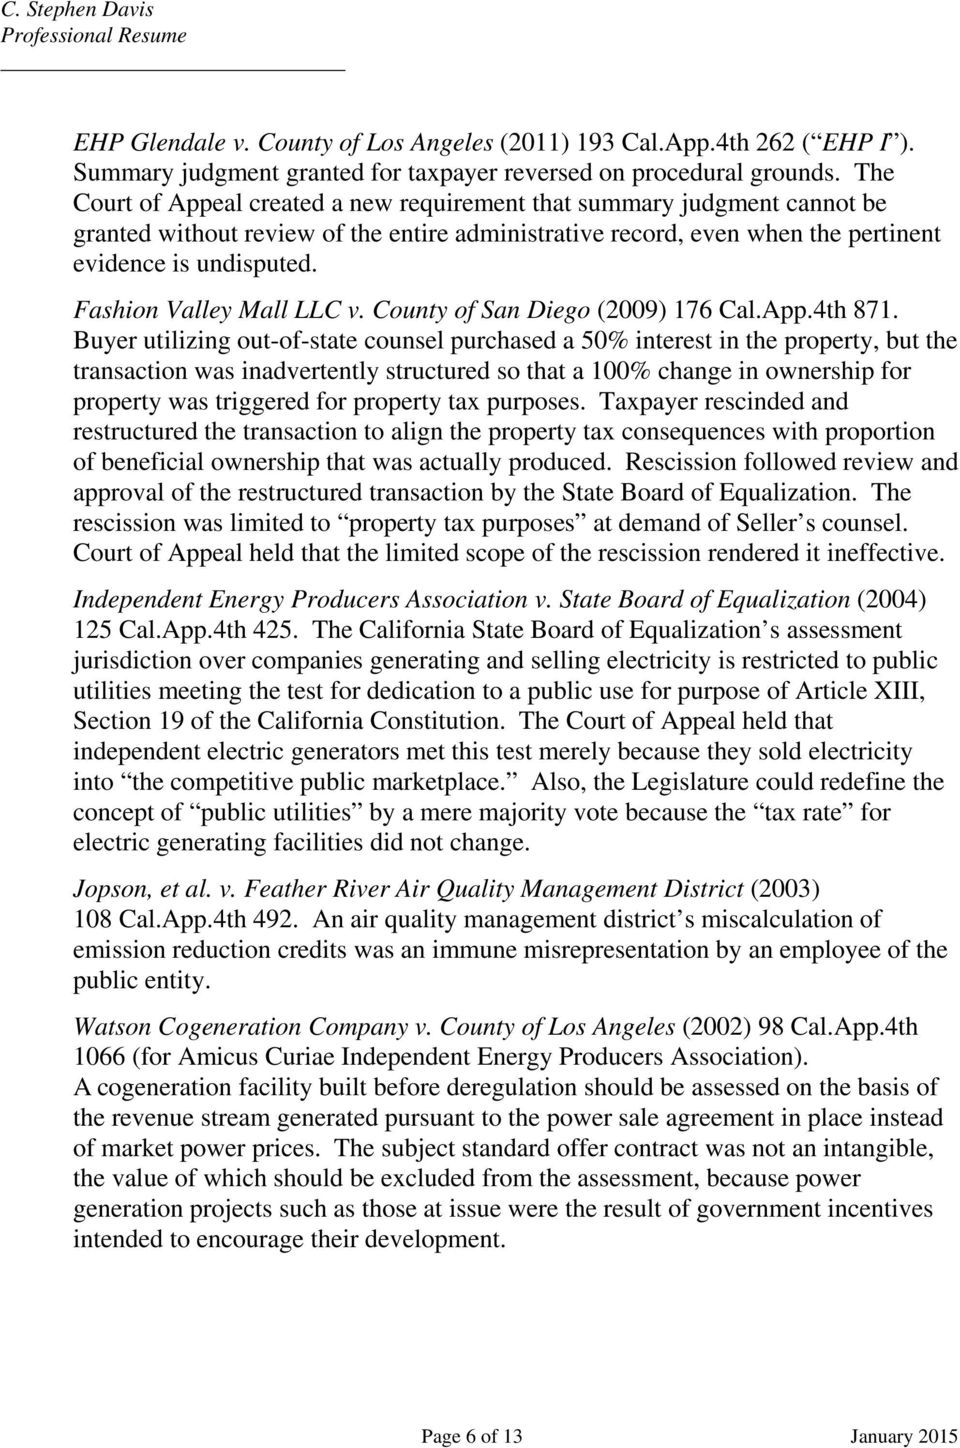 Fashion Valley Mall LLC v. County of San Diego (2009) 176 Cal.App.4th 871.